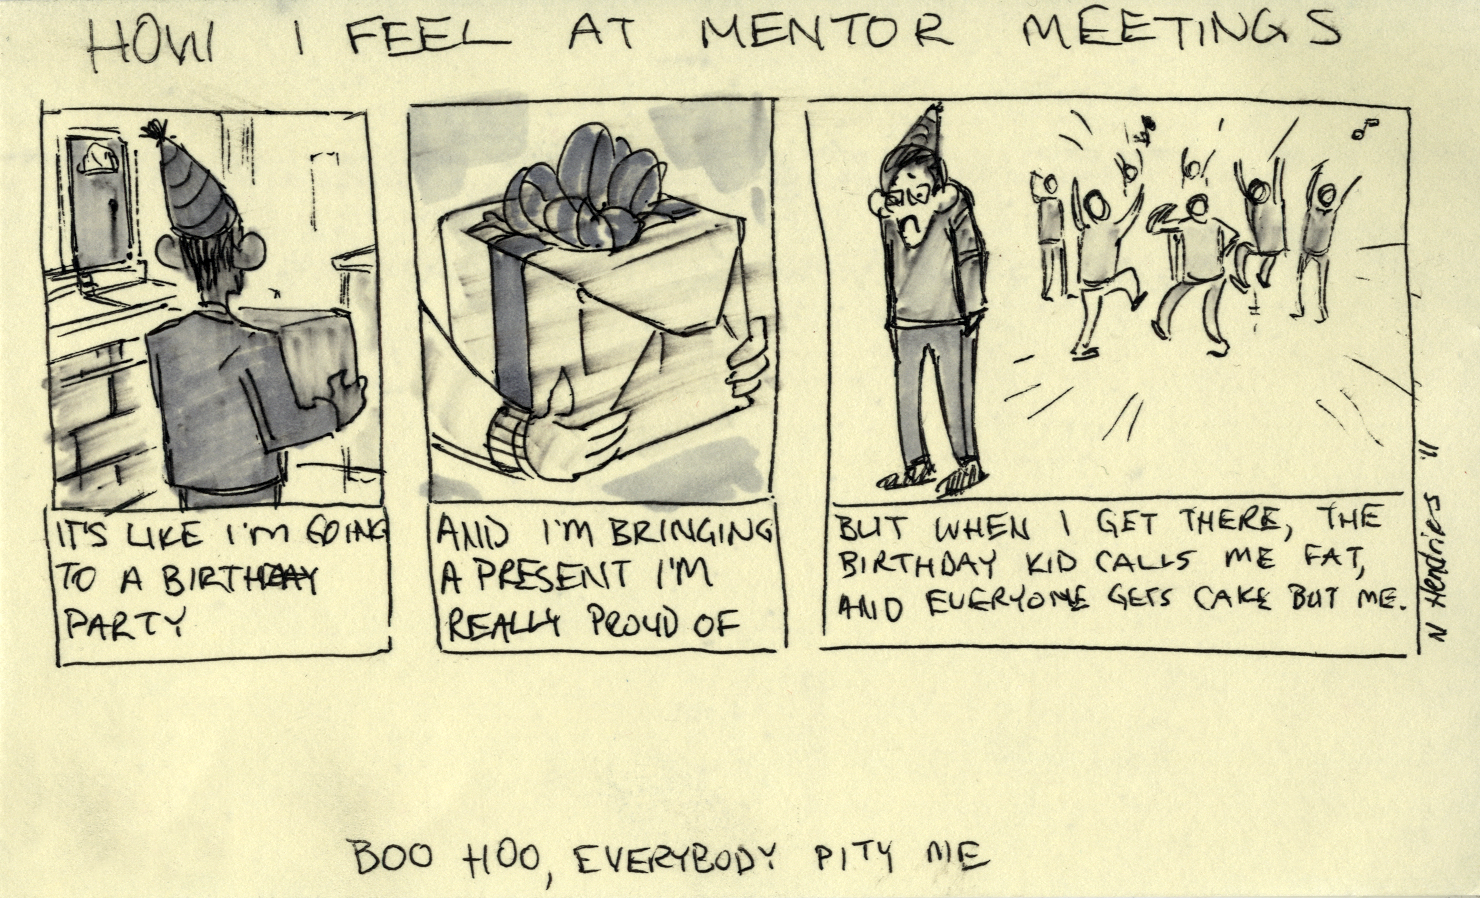 mentor meetings So, you have a found a mentor for yourself, you have spoken to the person once or twice, and finally you have set up an appointment to meet up for a one-on-one mentoring session.